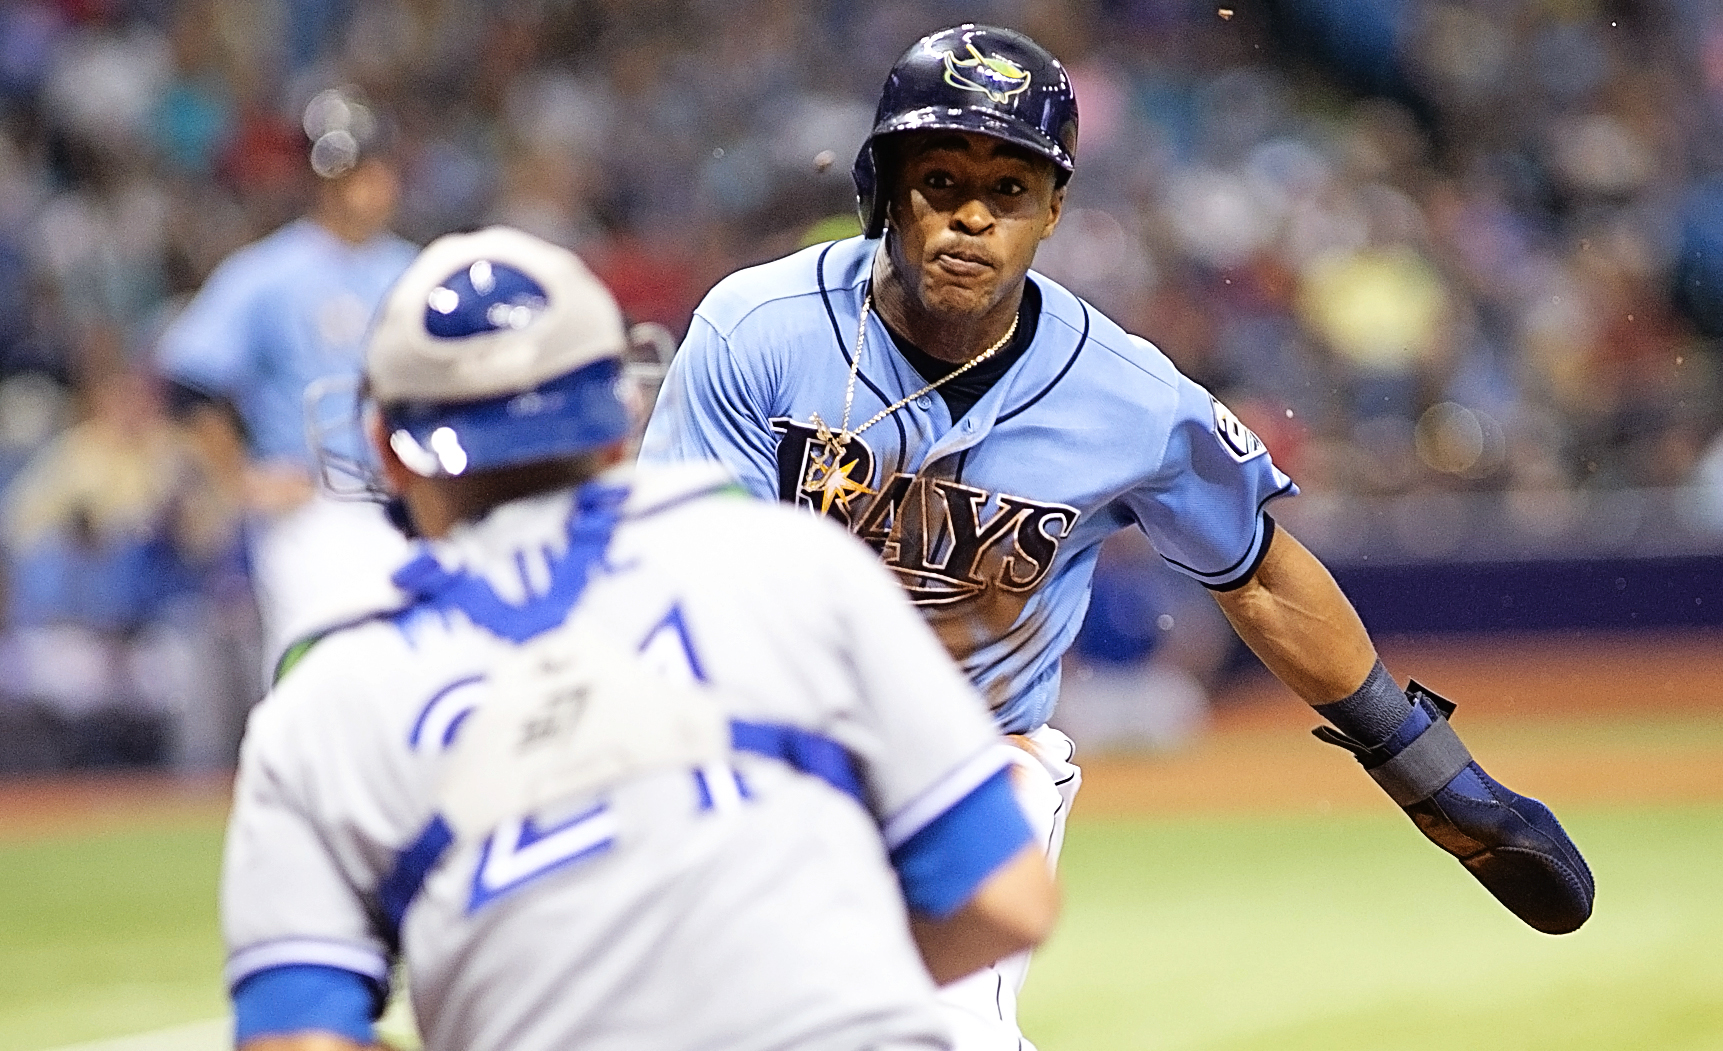 Mallex Smith is out at home after being caught stealing./CARMEN MANDATO